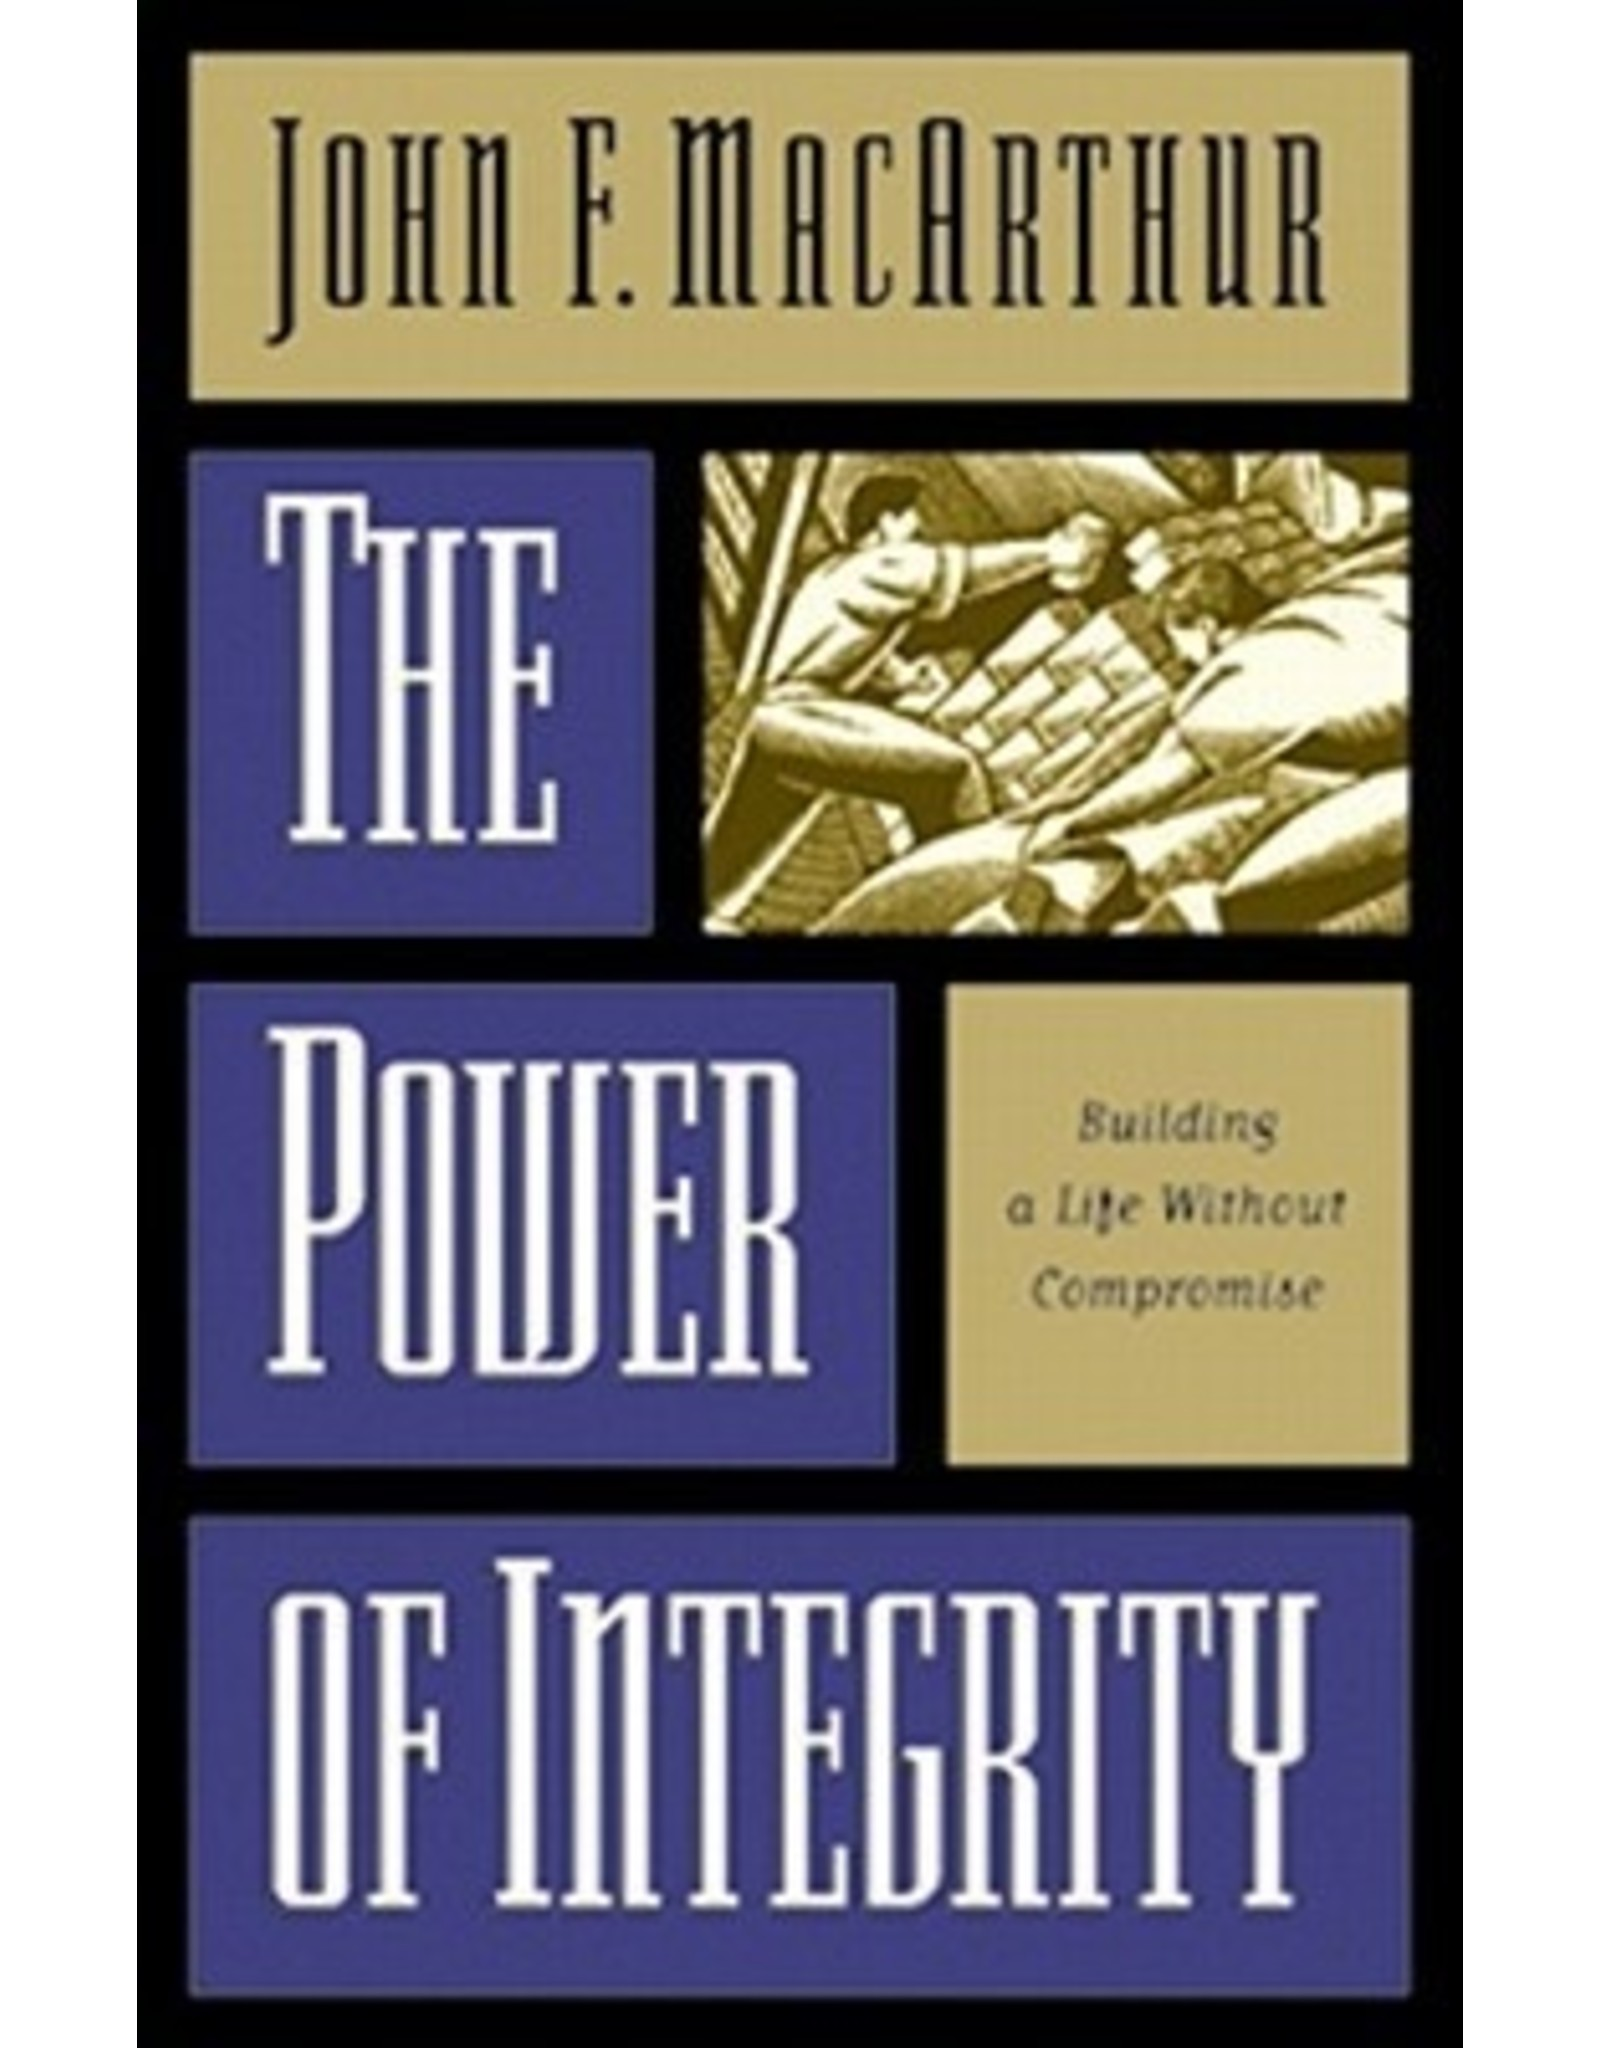 MacArthur The Power of Integrity